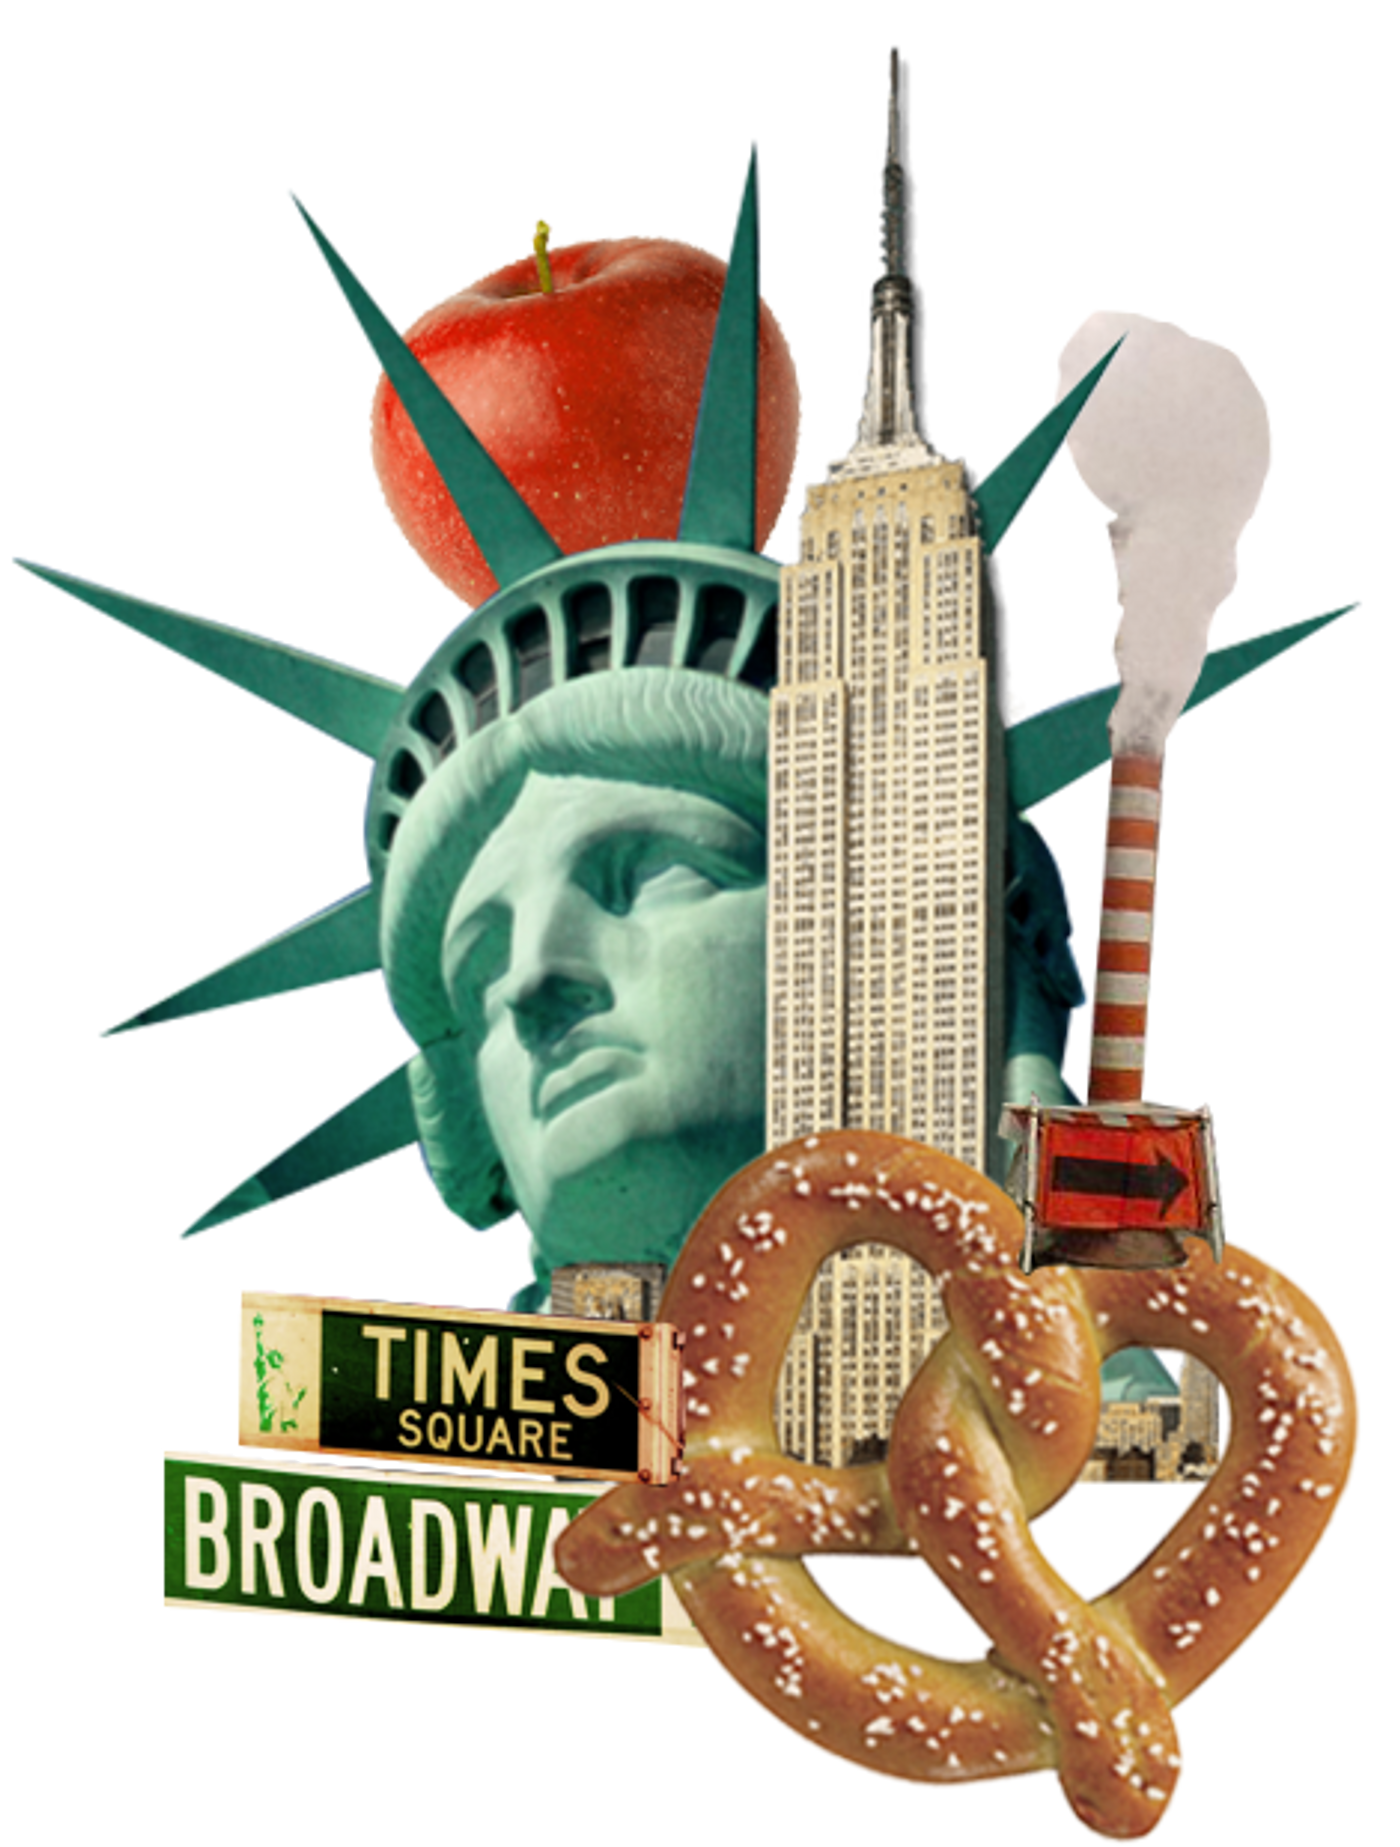 Collage of New York City with Statue of Liberty and pretzel.